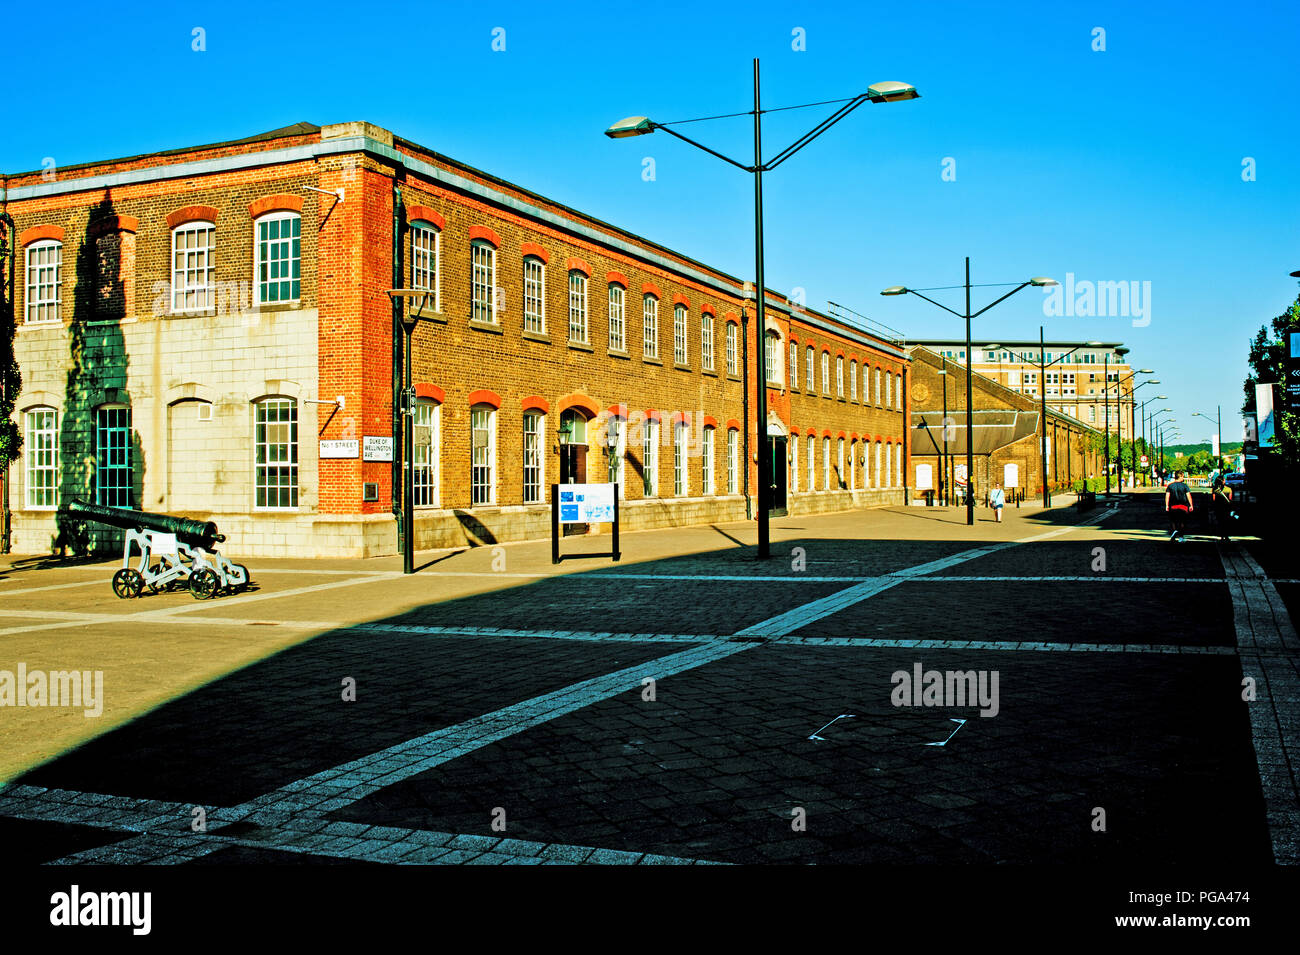 No 1 Street and Duke of Wellington Avenue, Royal Arsenal Riverside, Woolwich Arsenal , London, England - Stock Image